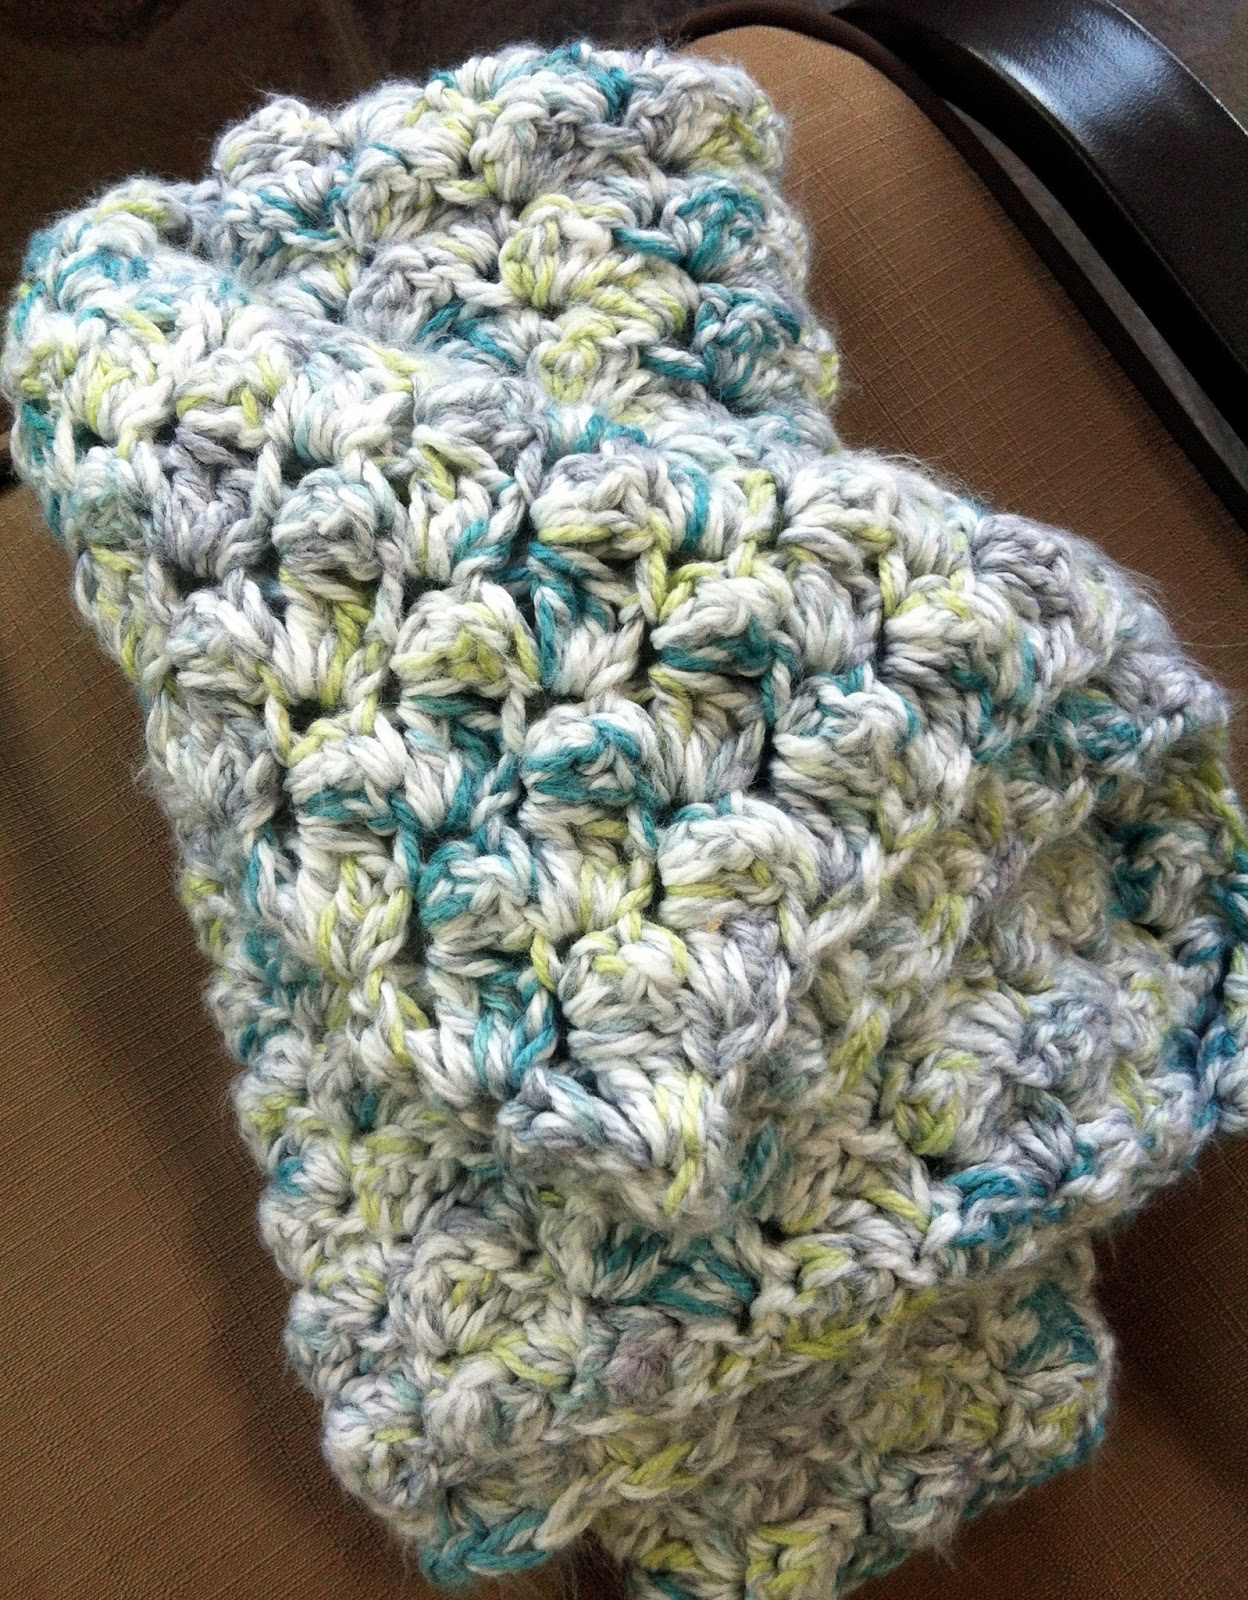 Crochet Patterns For Bernat Blanket Yarn : Inspire Me Grey: Two Easy Crochet Baby Blankets